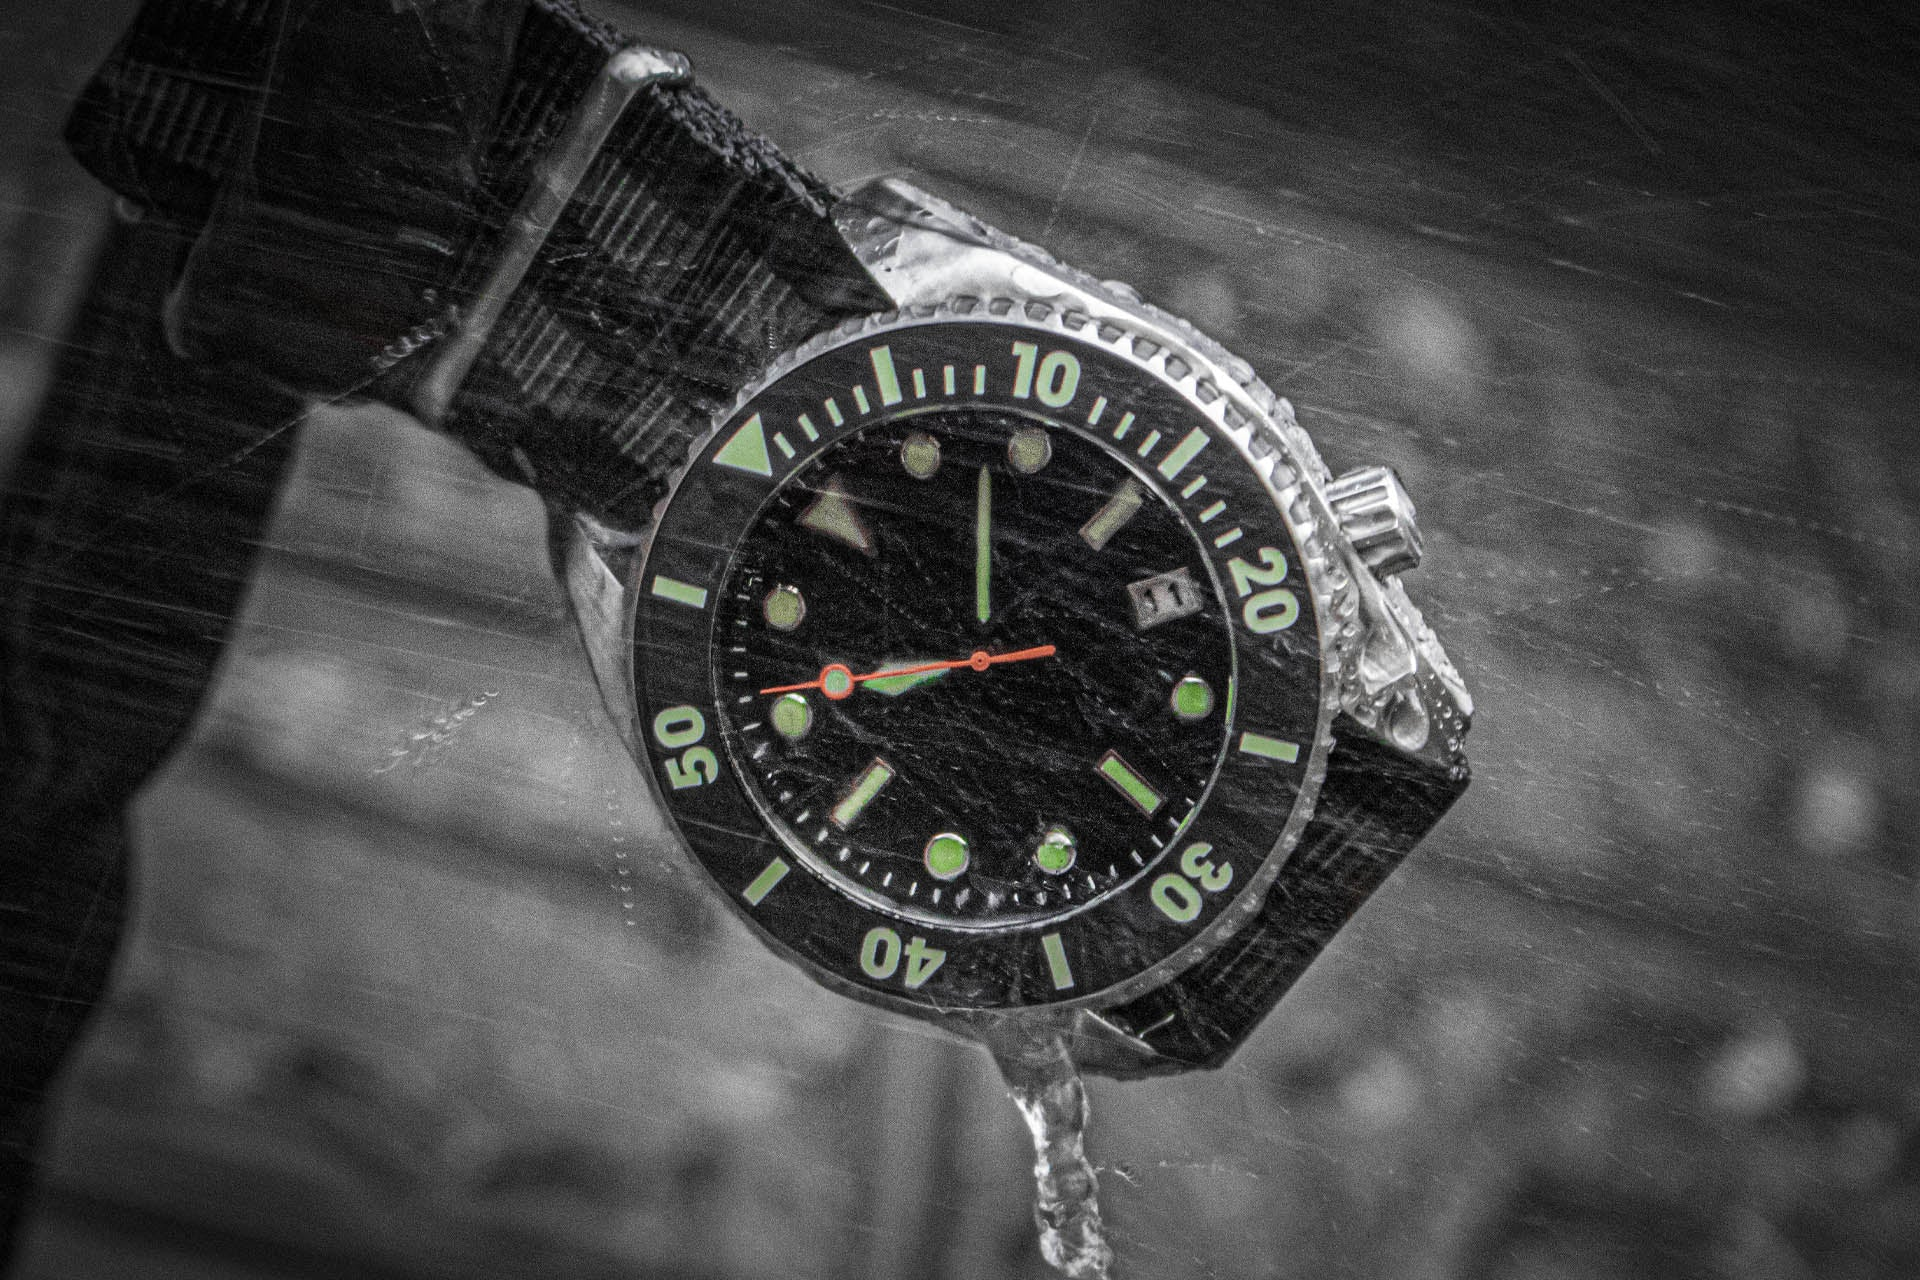 Enoksen - Deep Dive - Deep Dive Watch Zoomed In Escape Valve Detail Image